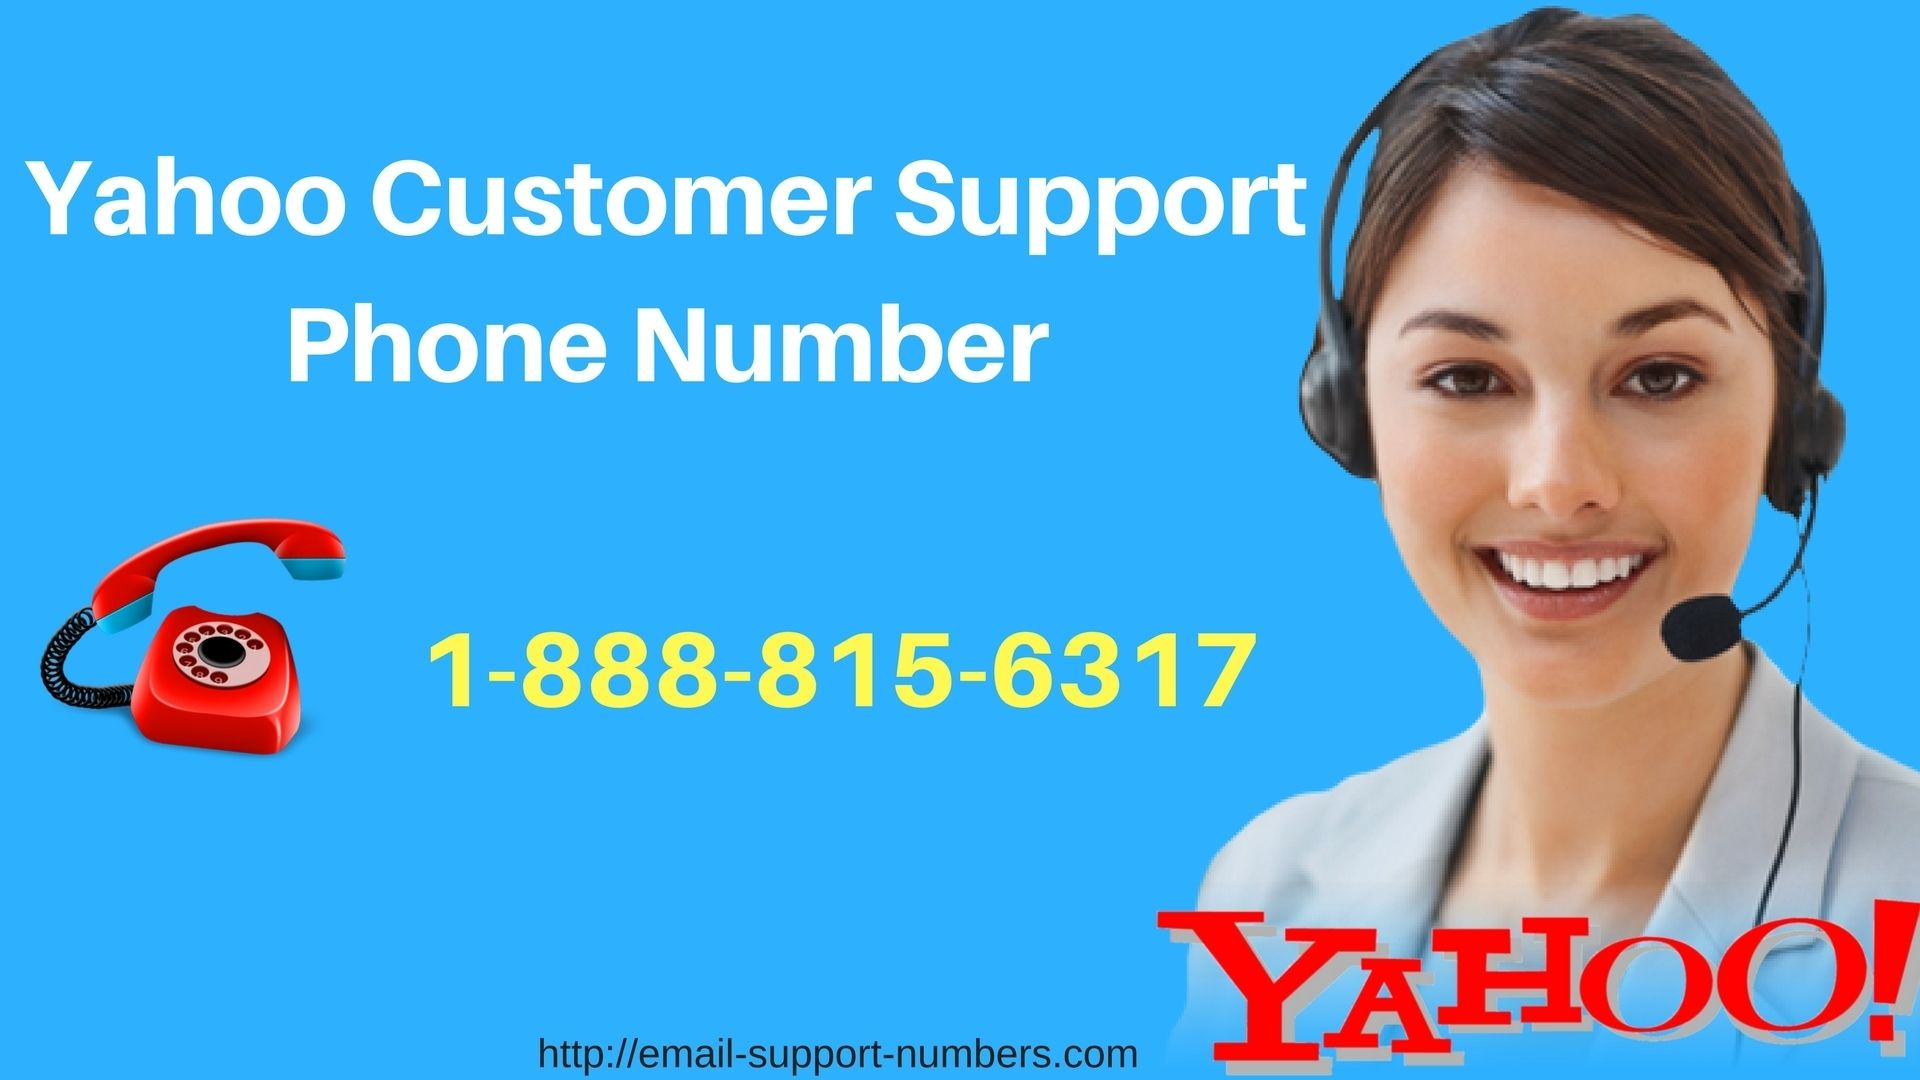 emailsupportnumbers Recover deleted chat history in